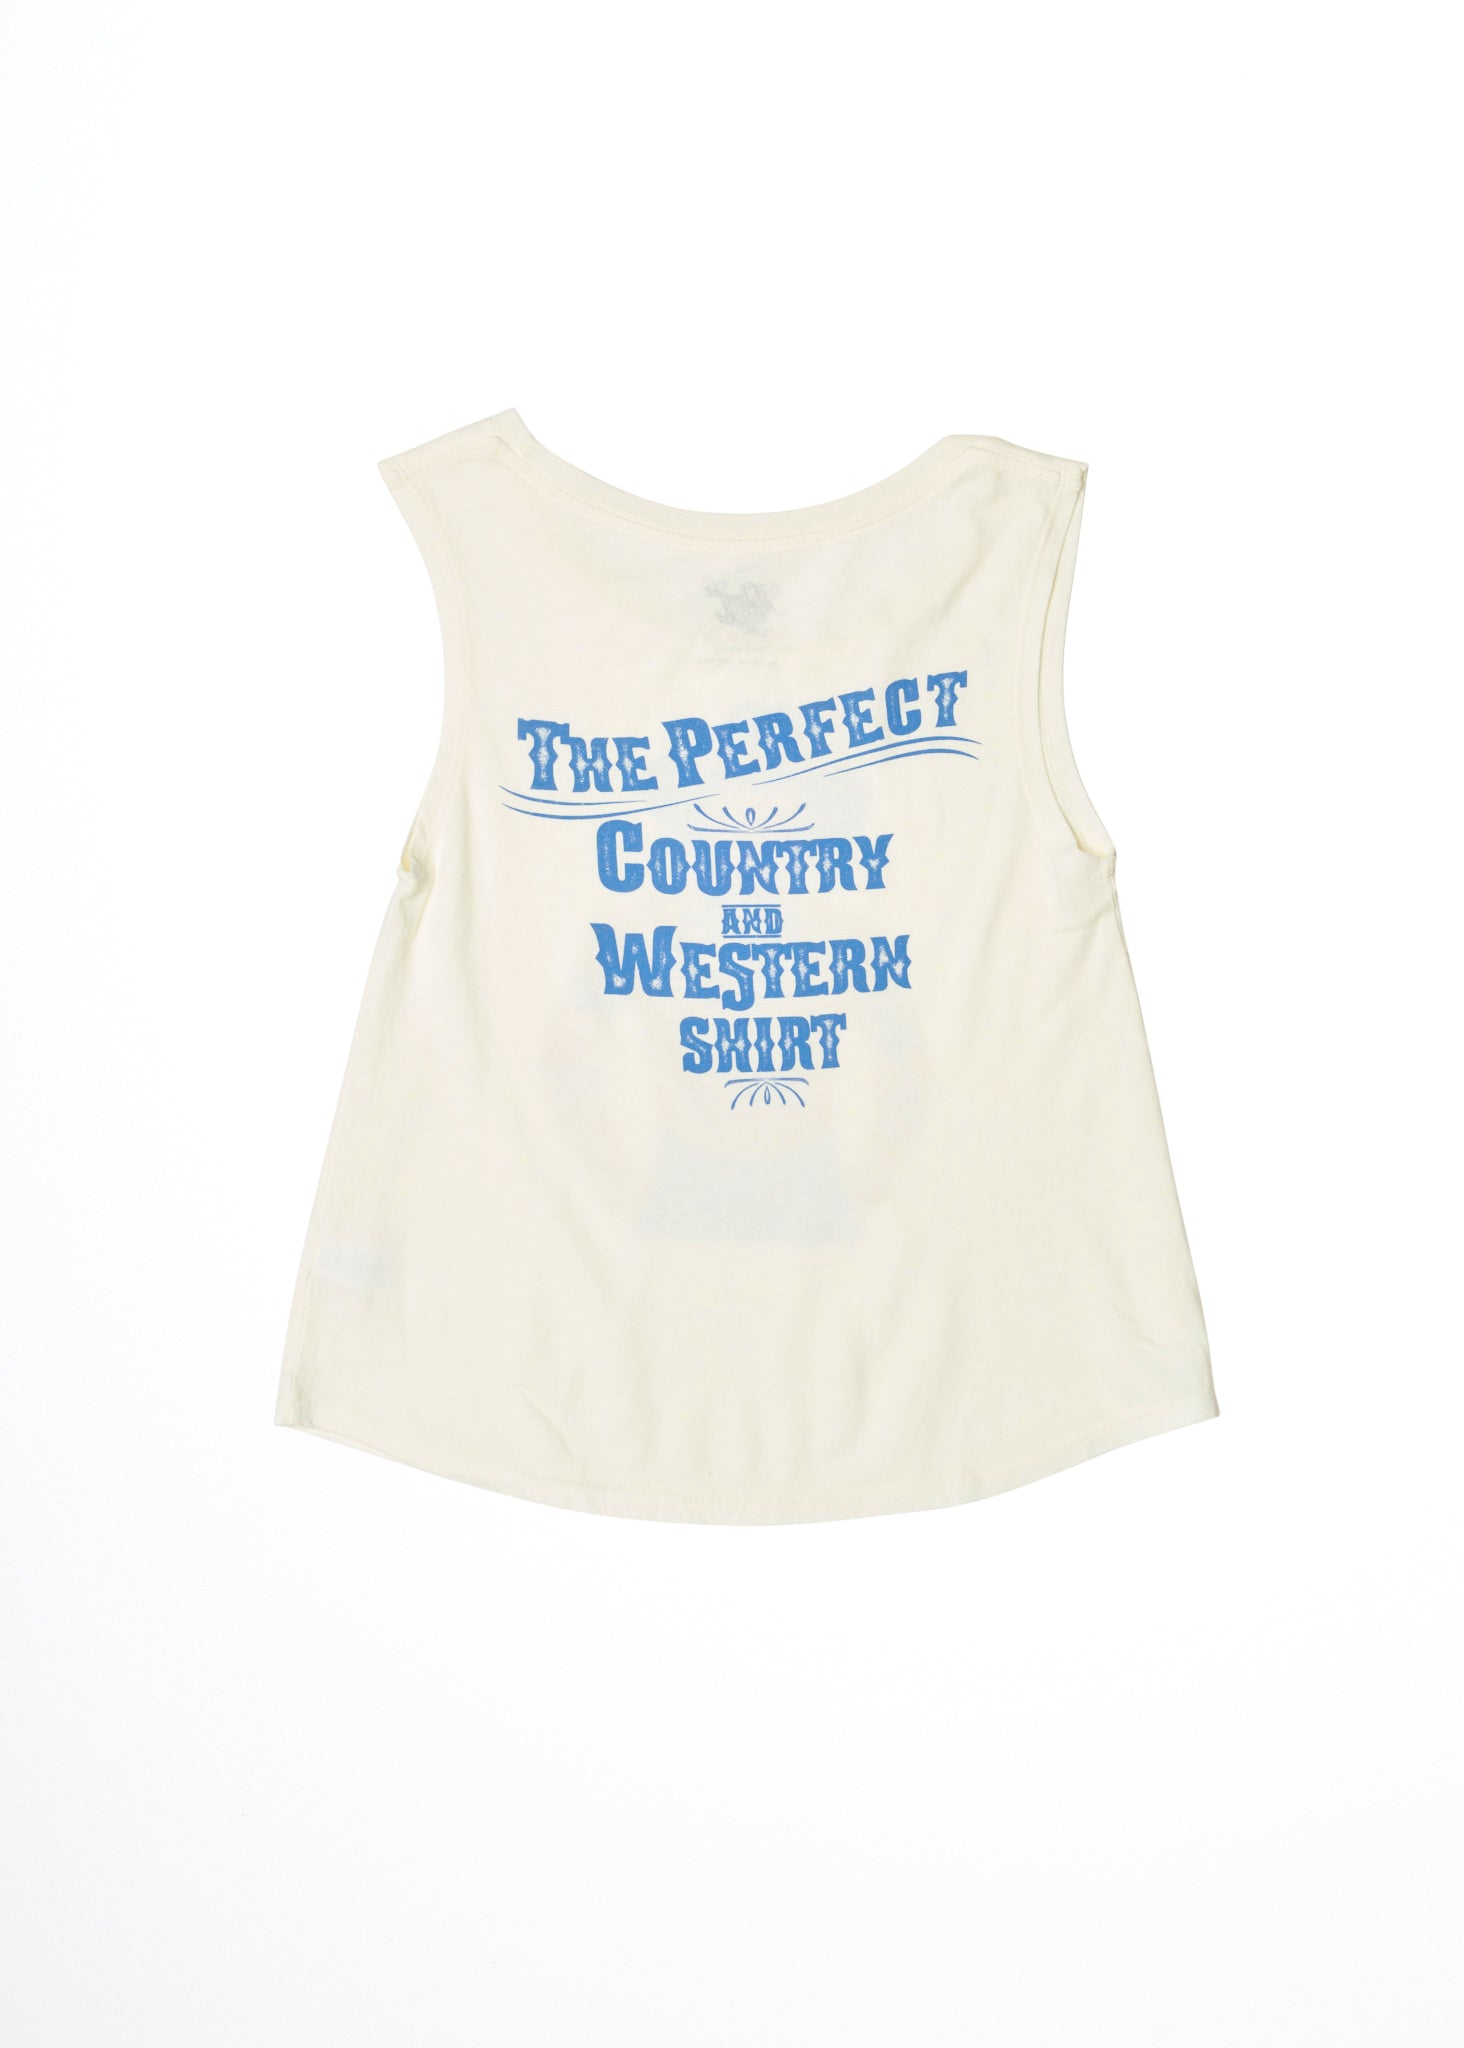 Perfect Country and Western Muscle Tee - Women's Muscle Tee - Midnight Rider